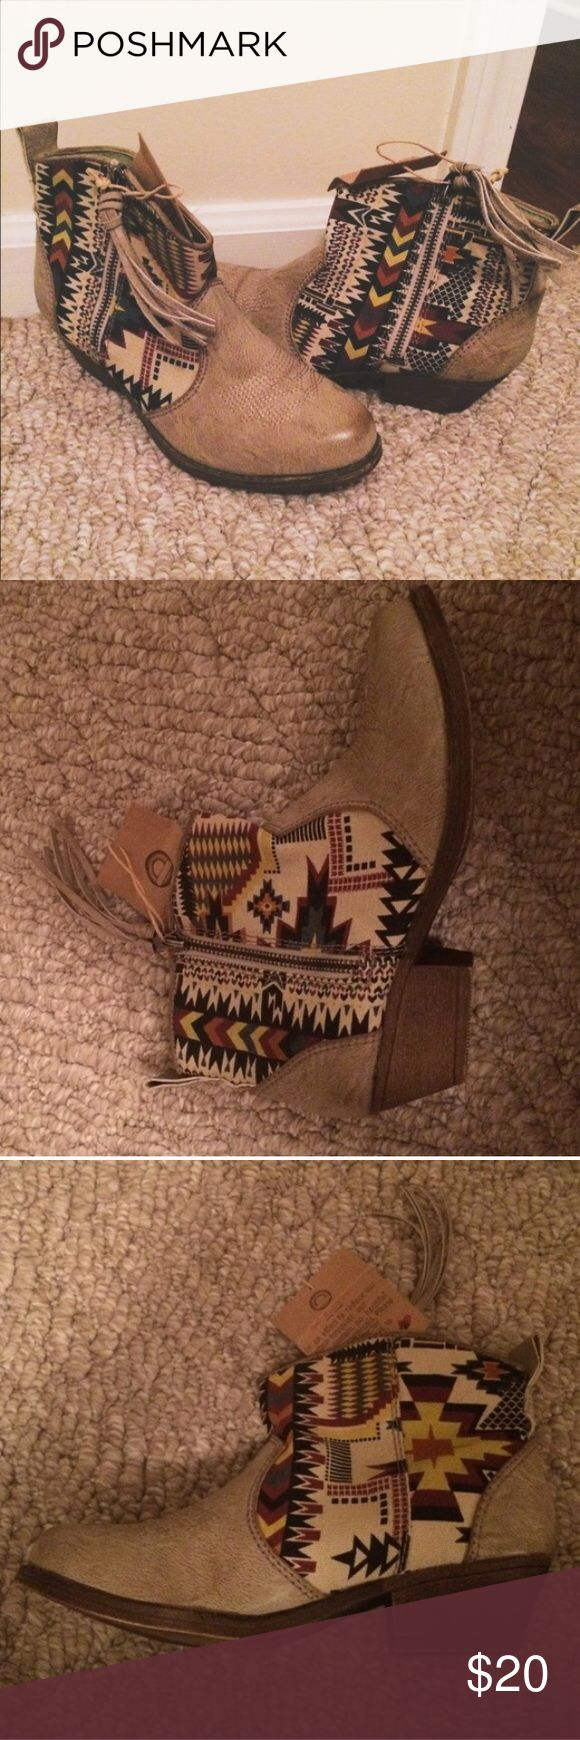 Aztec style ankle boot Cowboy boot style shoe with very low heel. Never worn! Big Buddha Shoes Ankle Boots & Booties